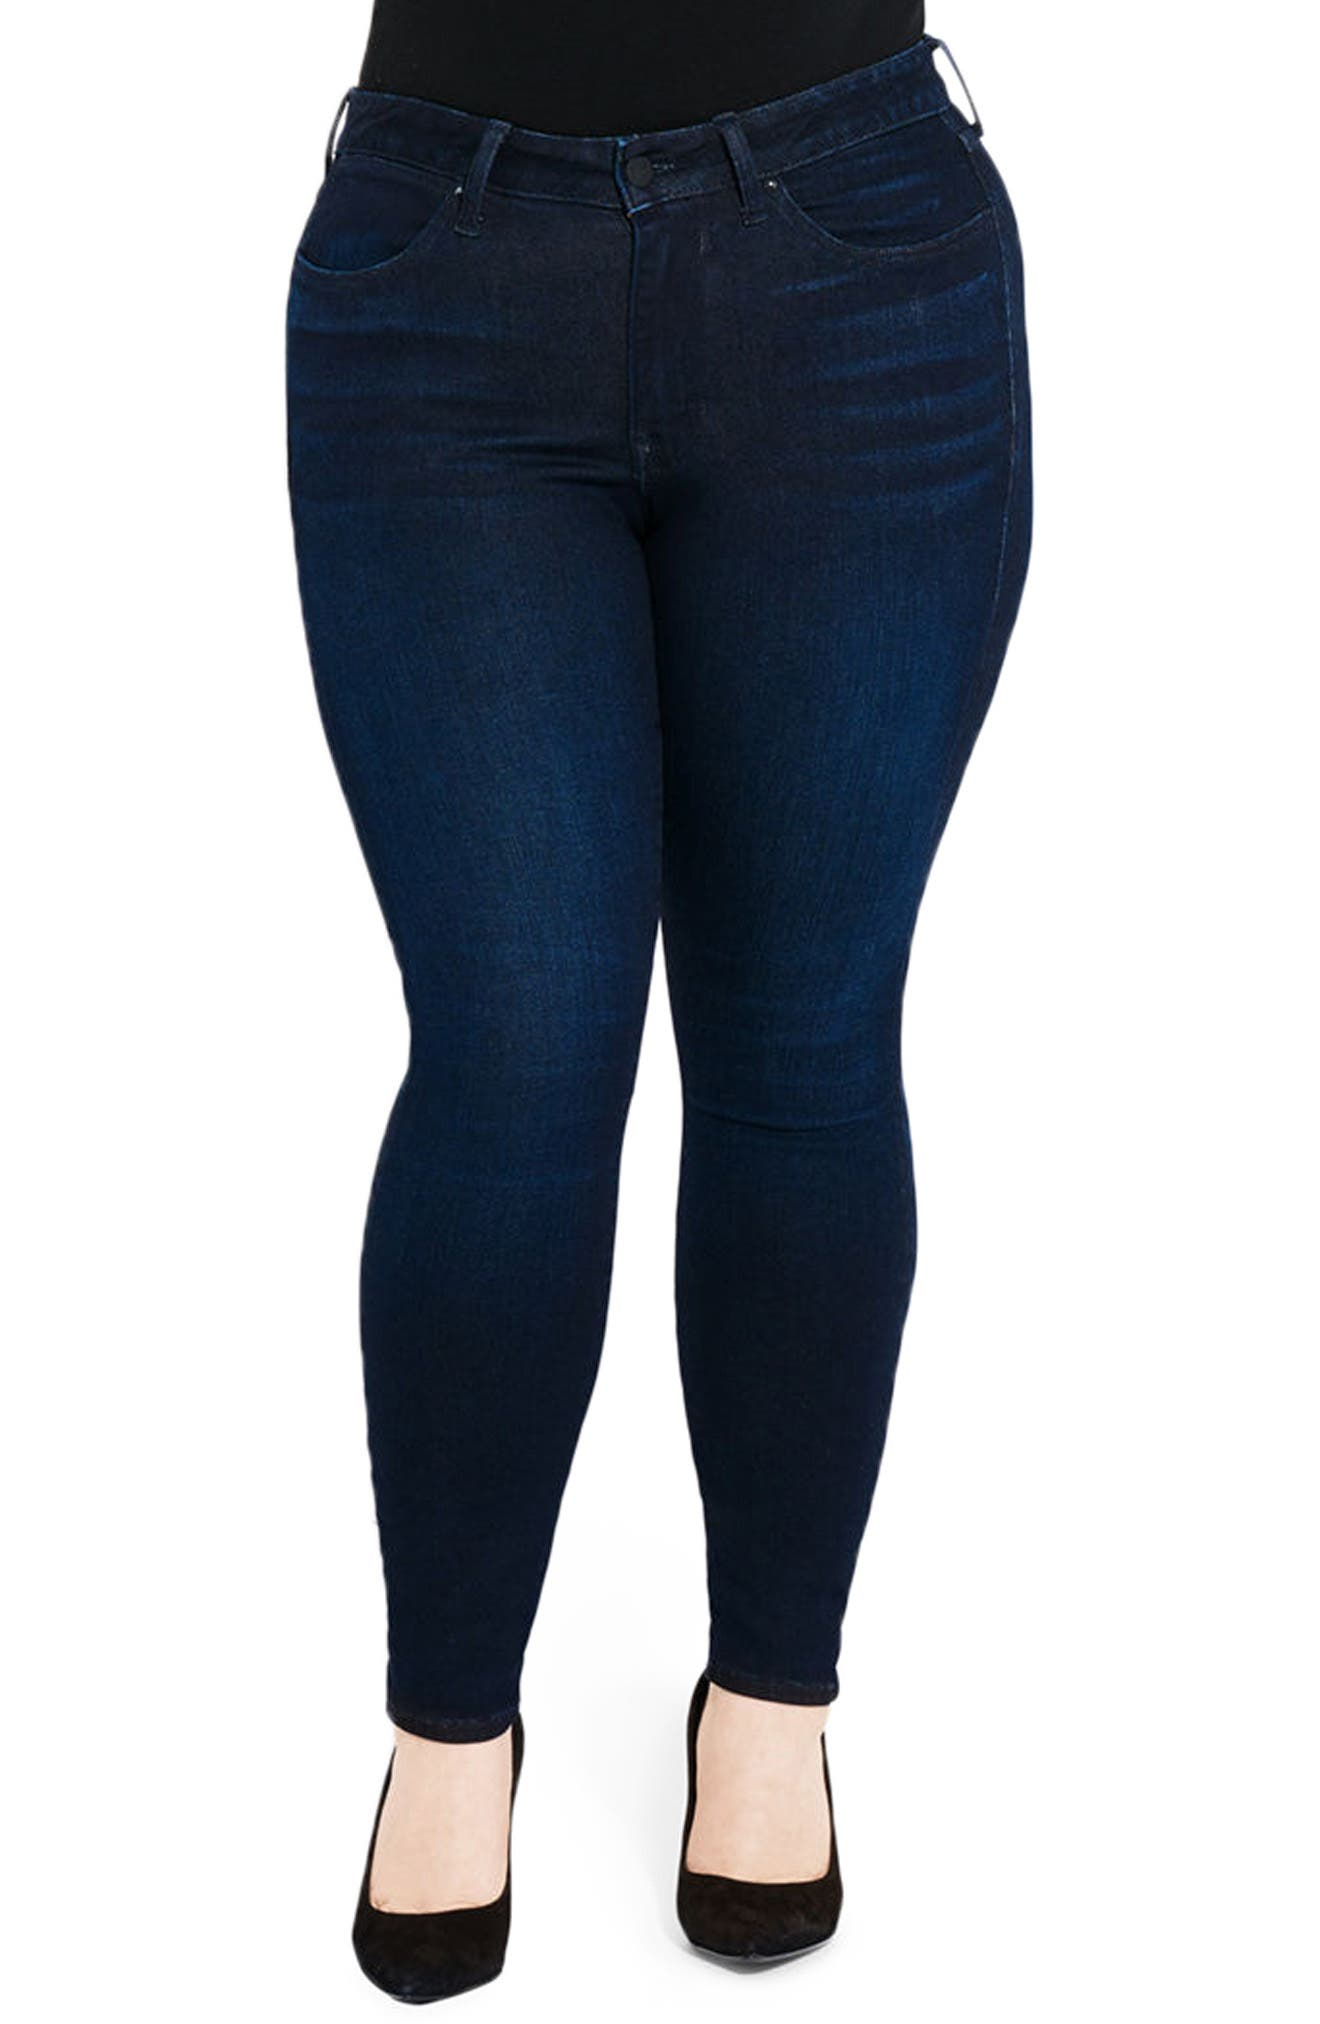 The One Love High Waist Skinny Jeans,                             Main thumbnail 1, color,                             400